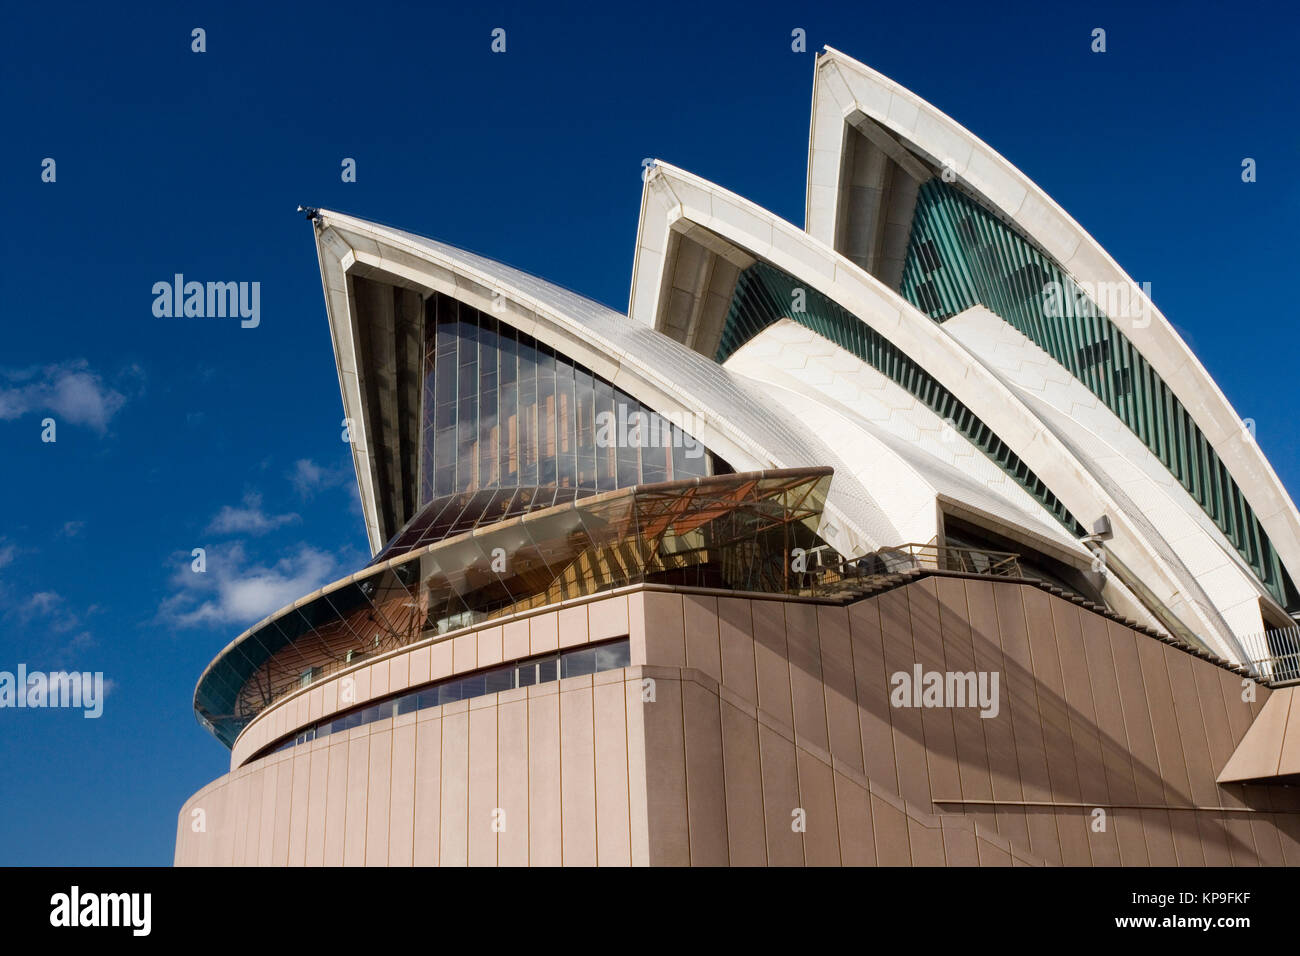 The iconic architecture of the Sydney Opera House in the city of Sydney in Australia. - Stock Image